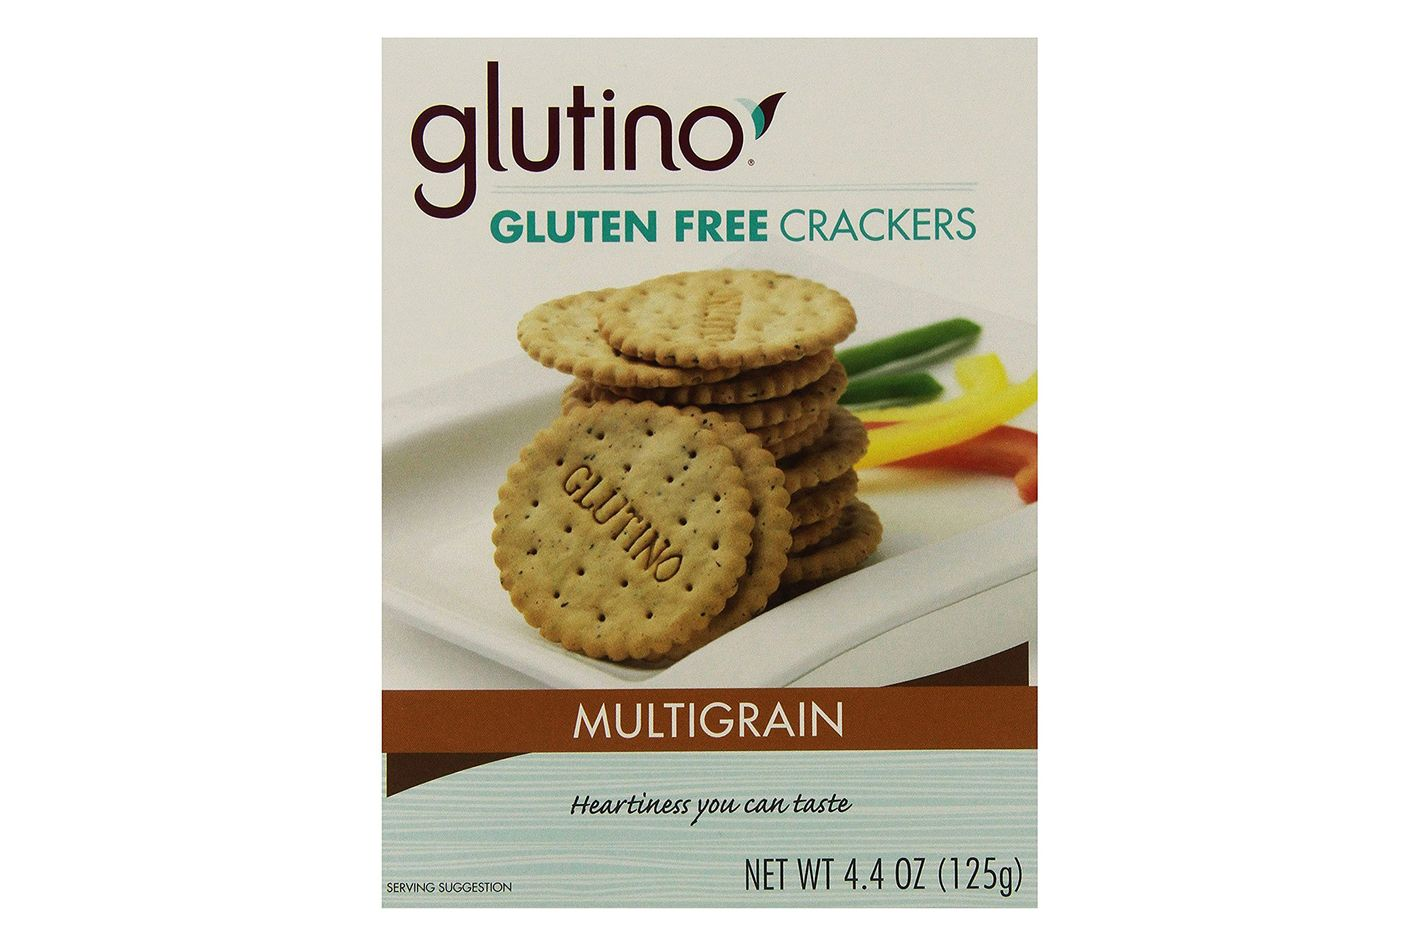 Glutino Gluten-Free Crackers, Multigrain, Pack of 6